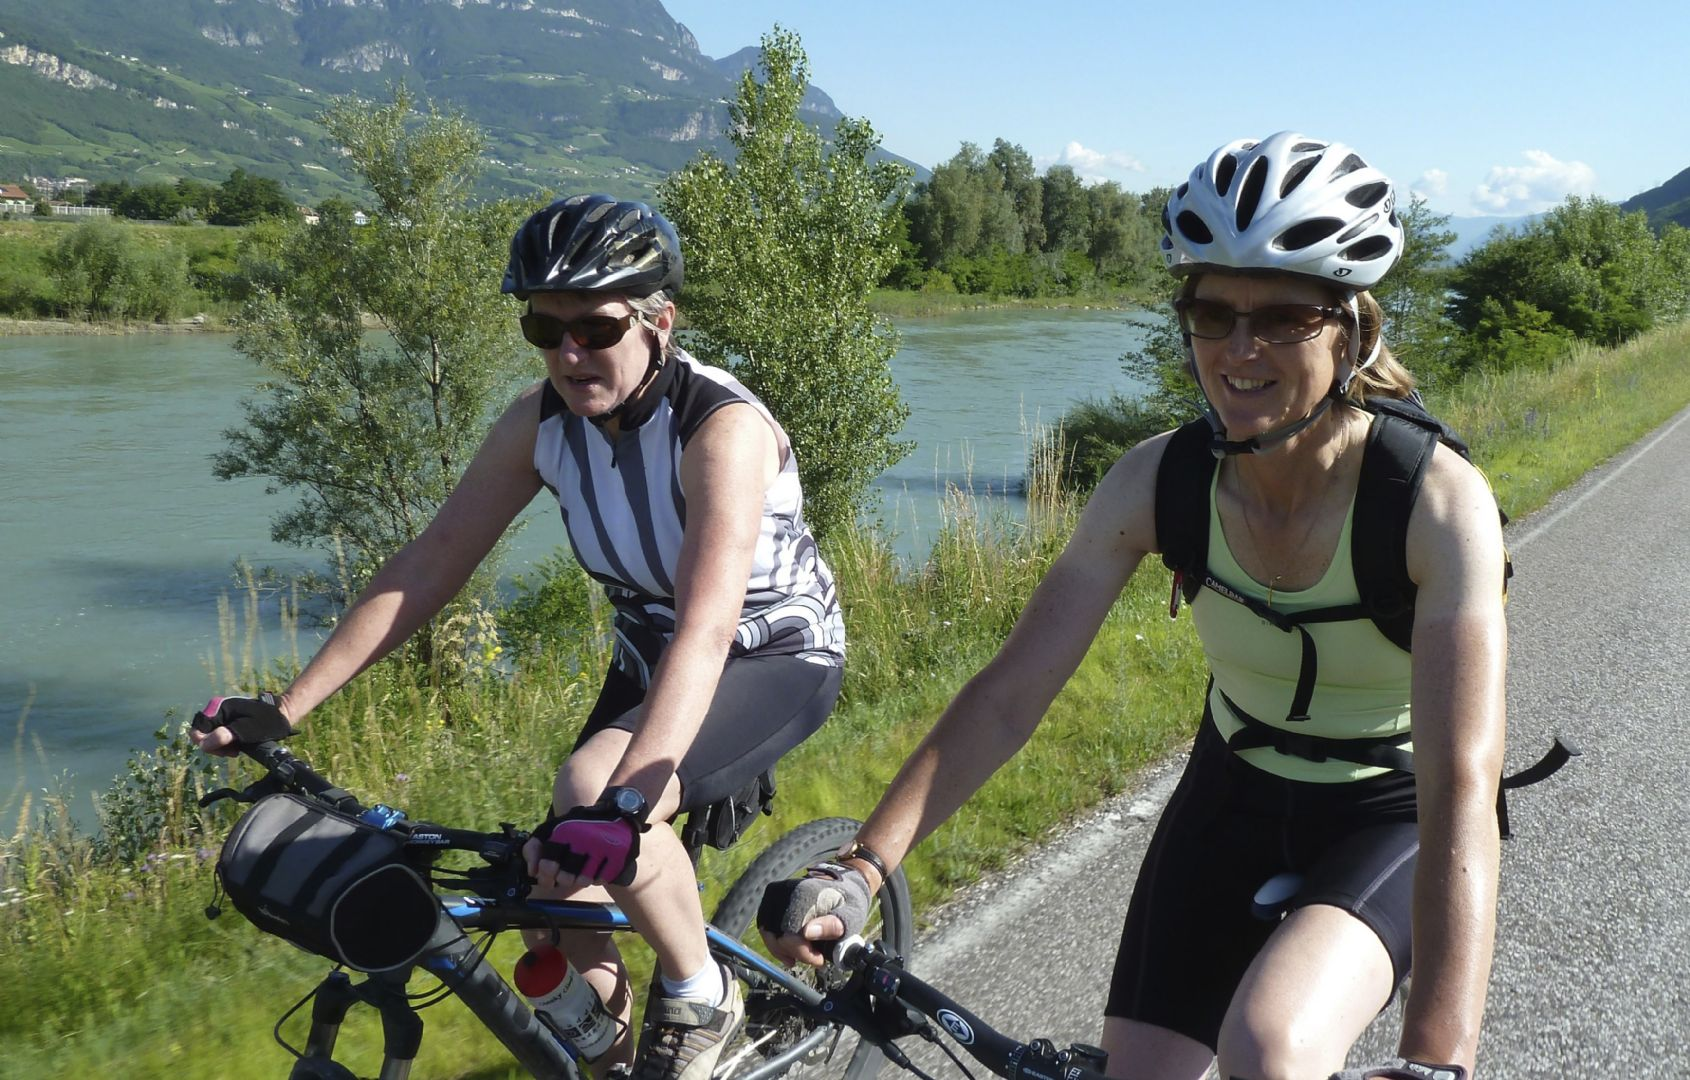 _Customer.27713.11769.jpg - Austria - Ten Lakes Tour - Self-Guided Leisure Cycling Holiday - Leisure Cycling